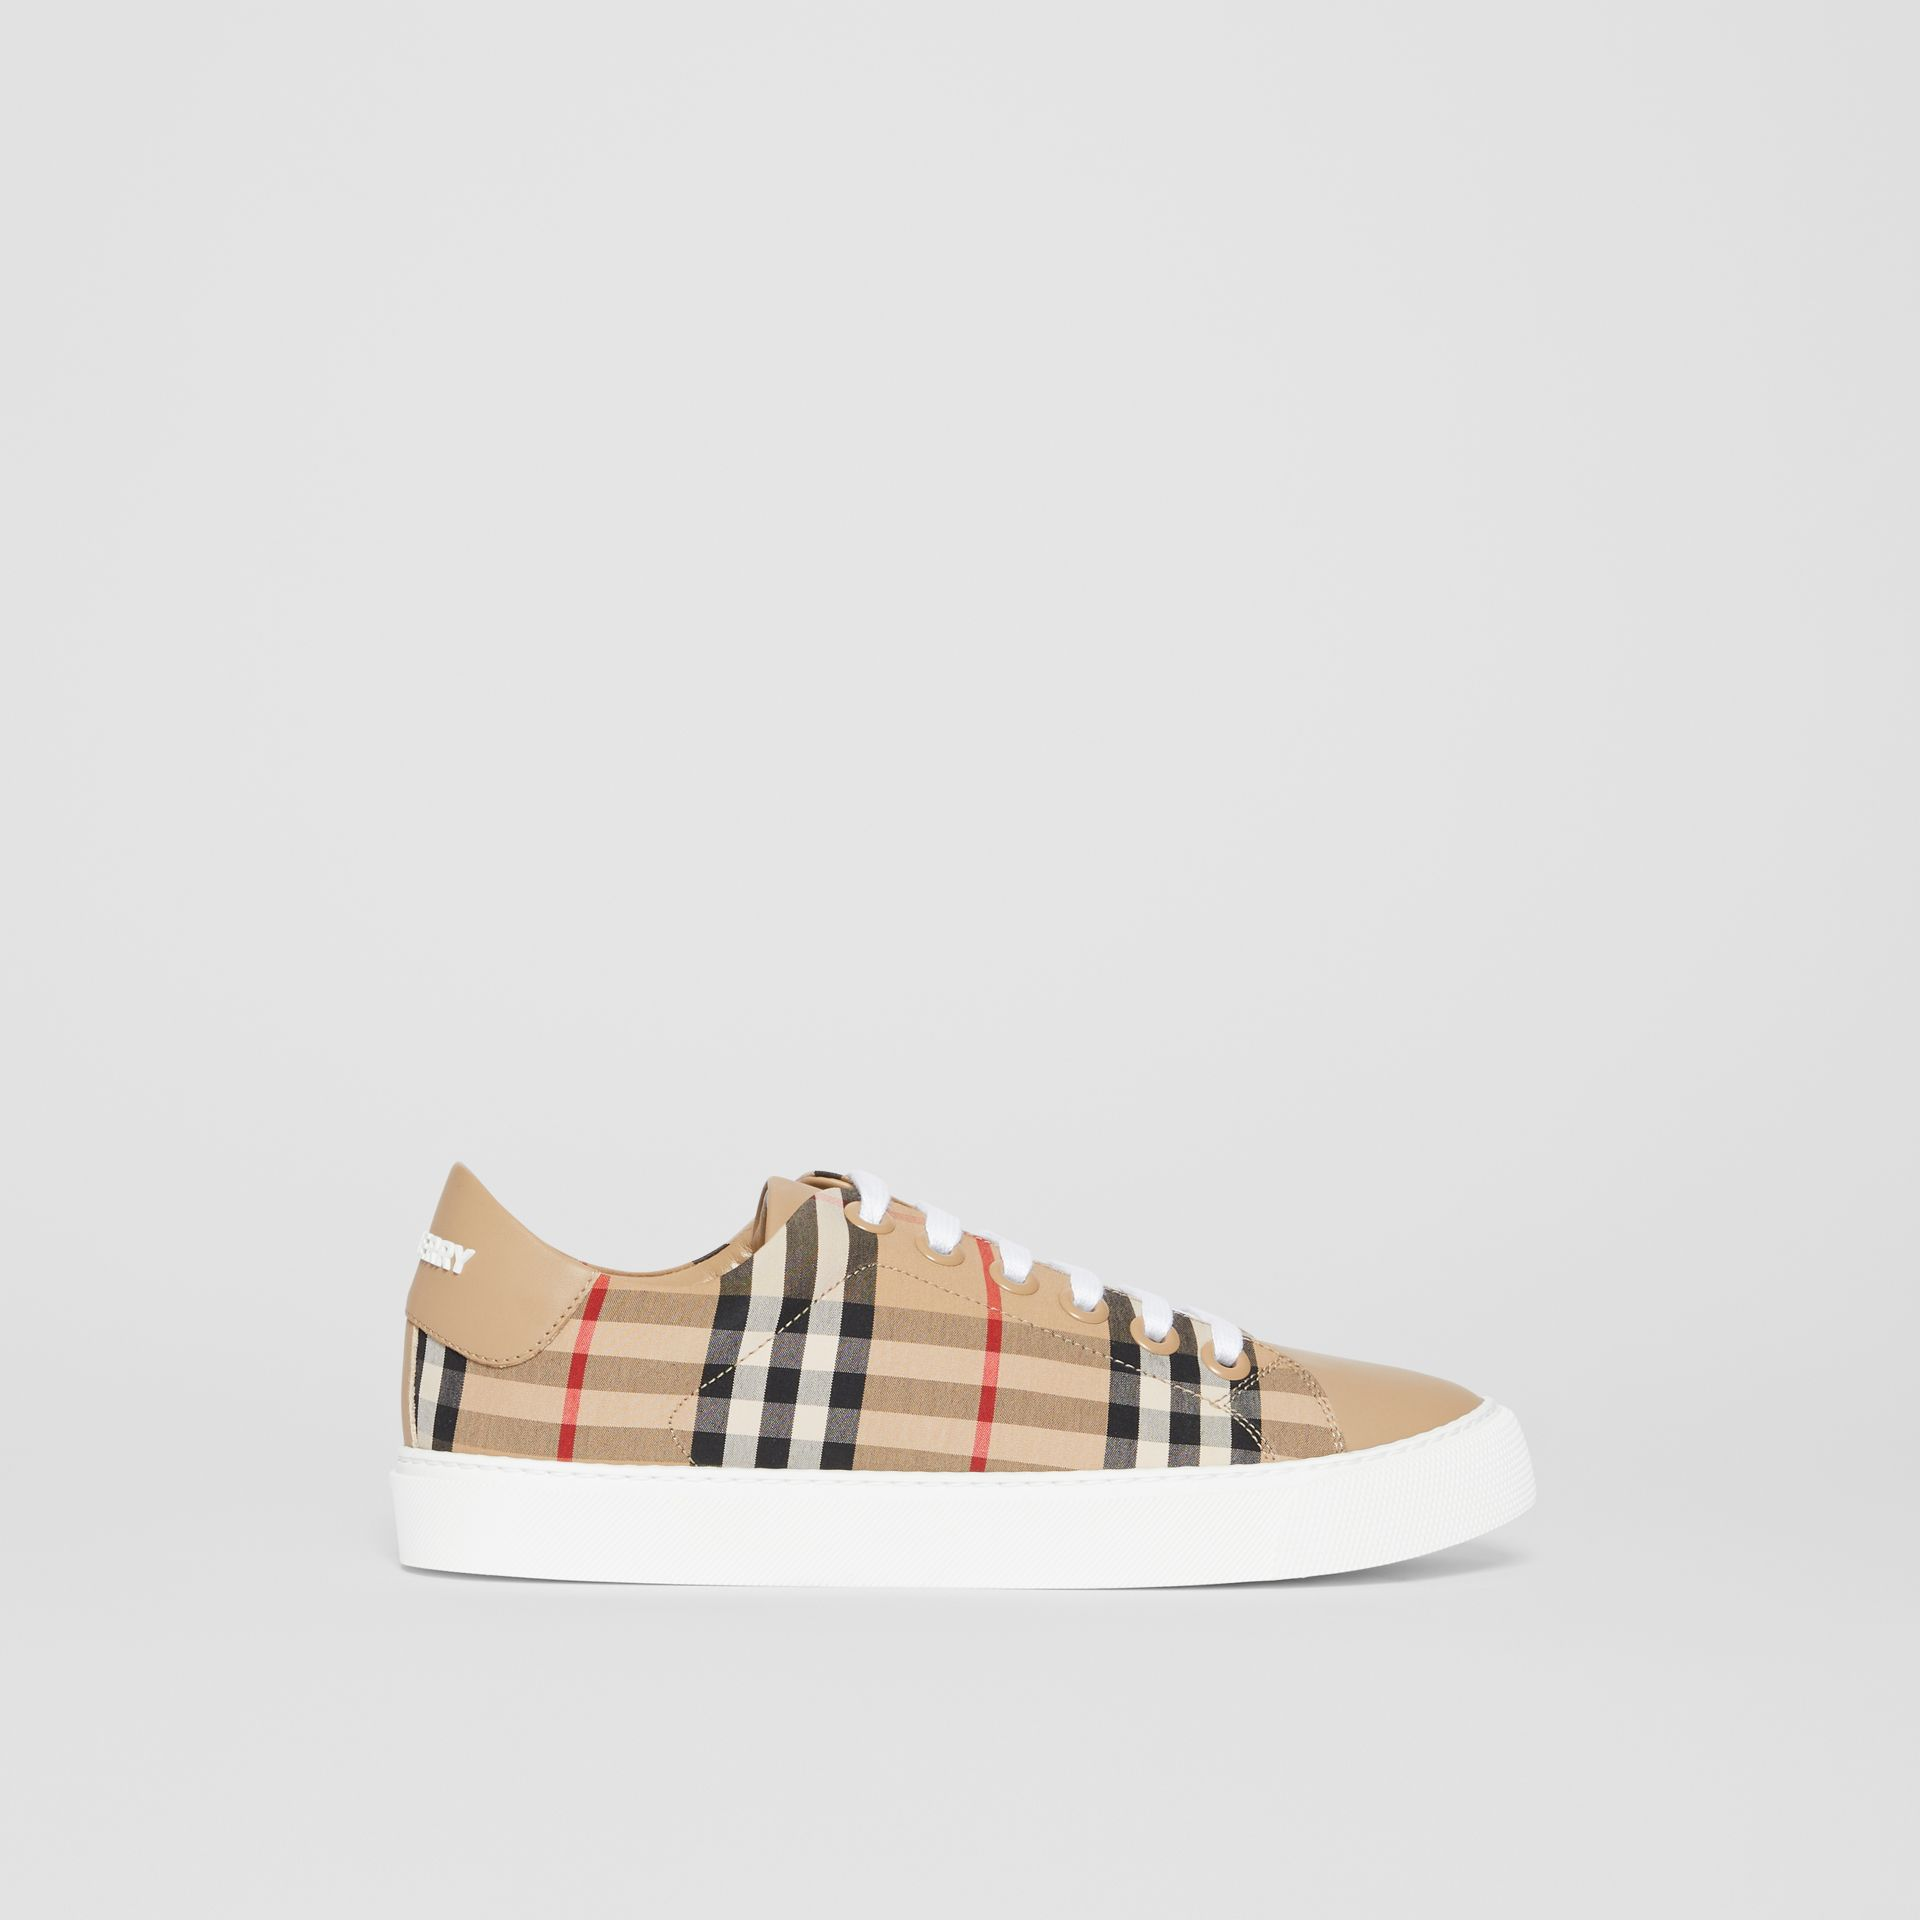 Vintage Check and Leather Sneakers in Archive Beige - Women | Burberry - gallery image 4